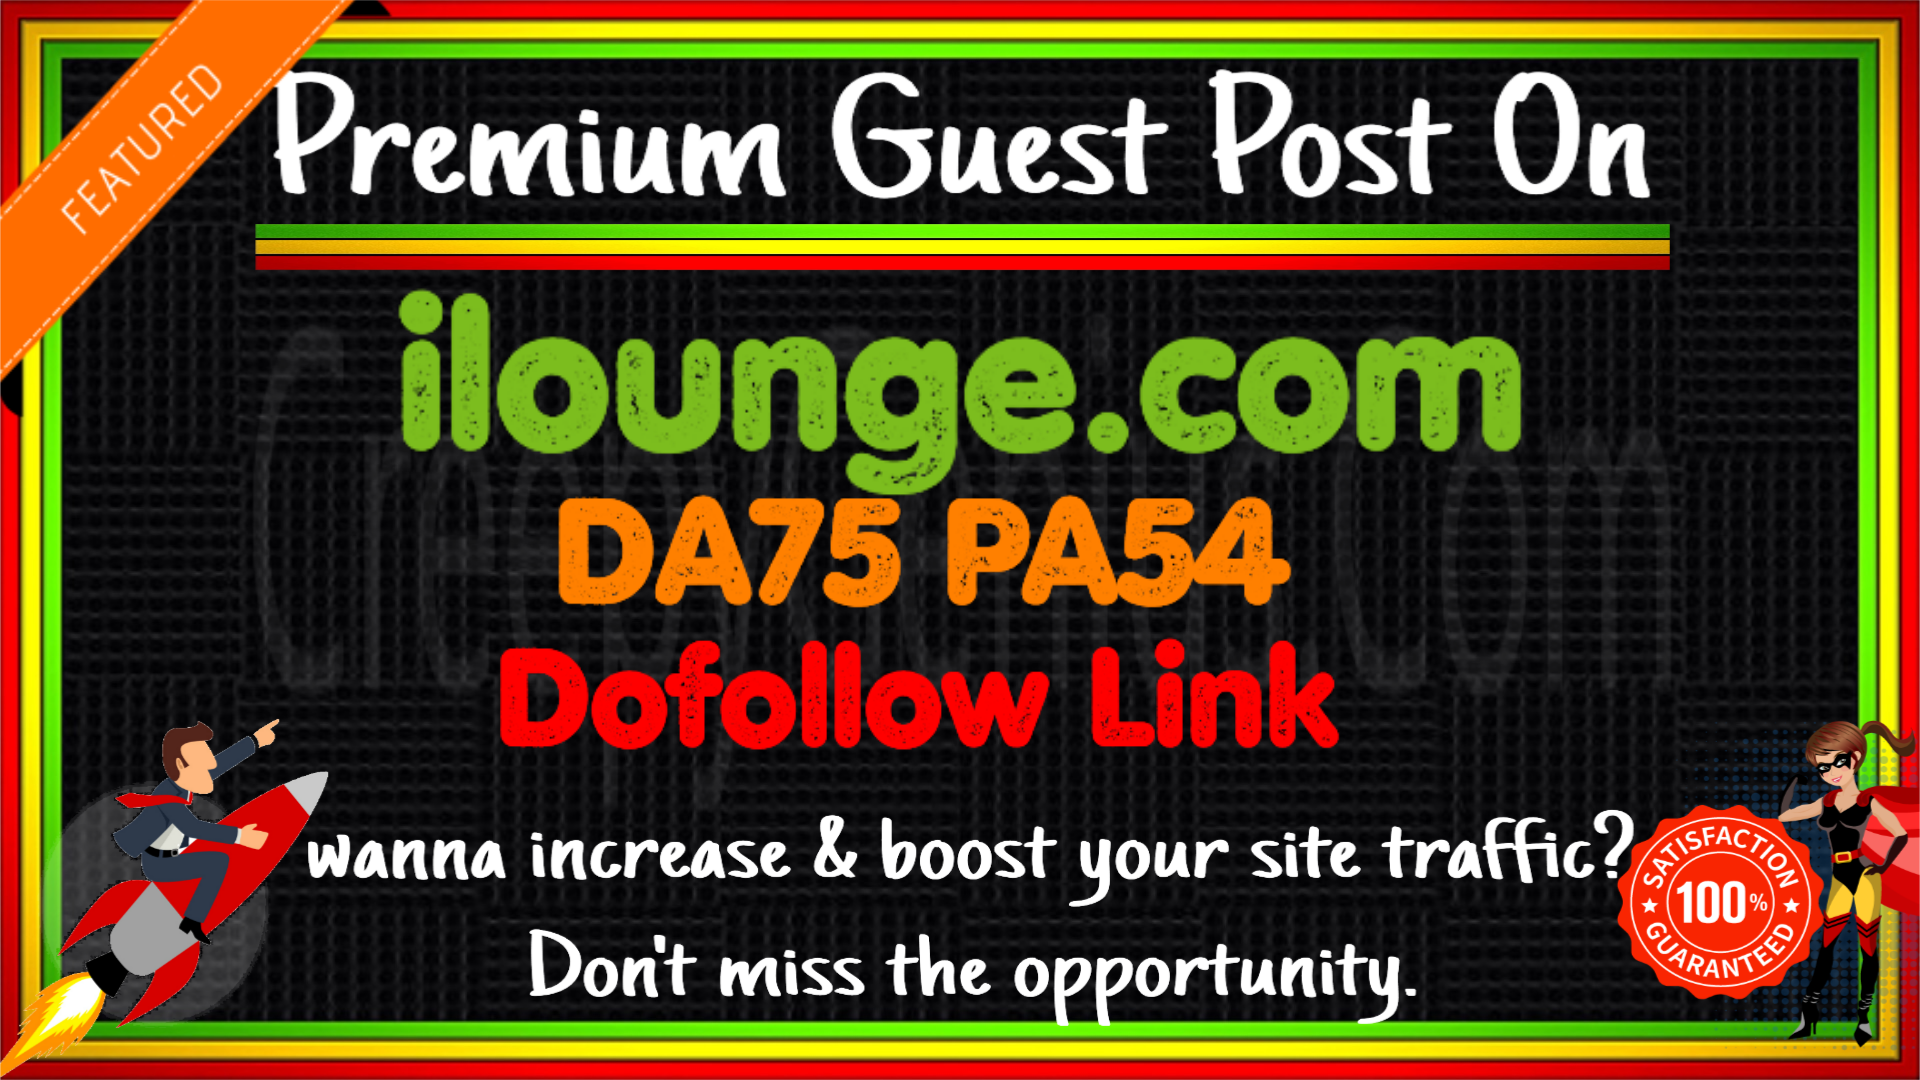 Publish Content On Google News Approved site ilounge. com DA83 PA60 with DF